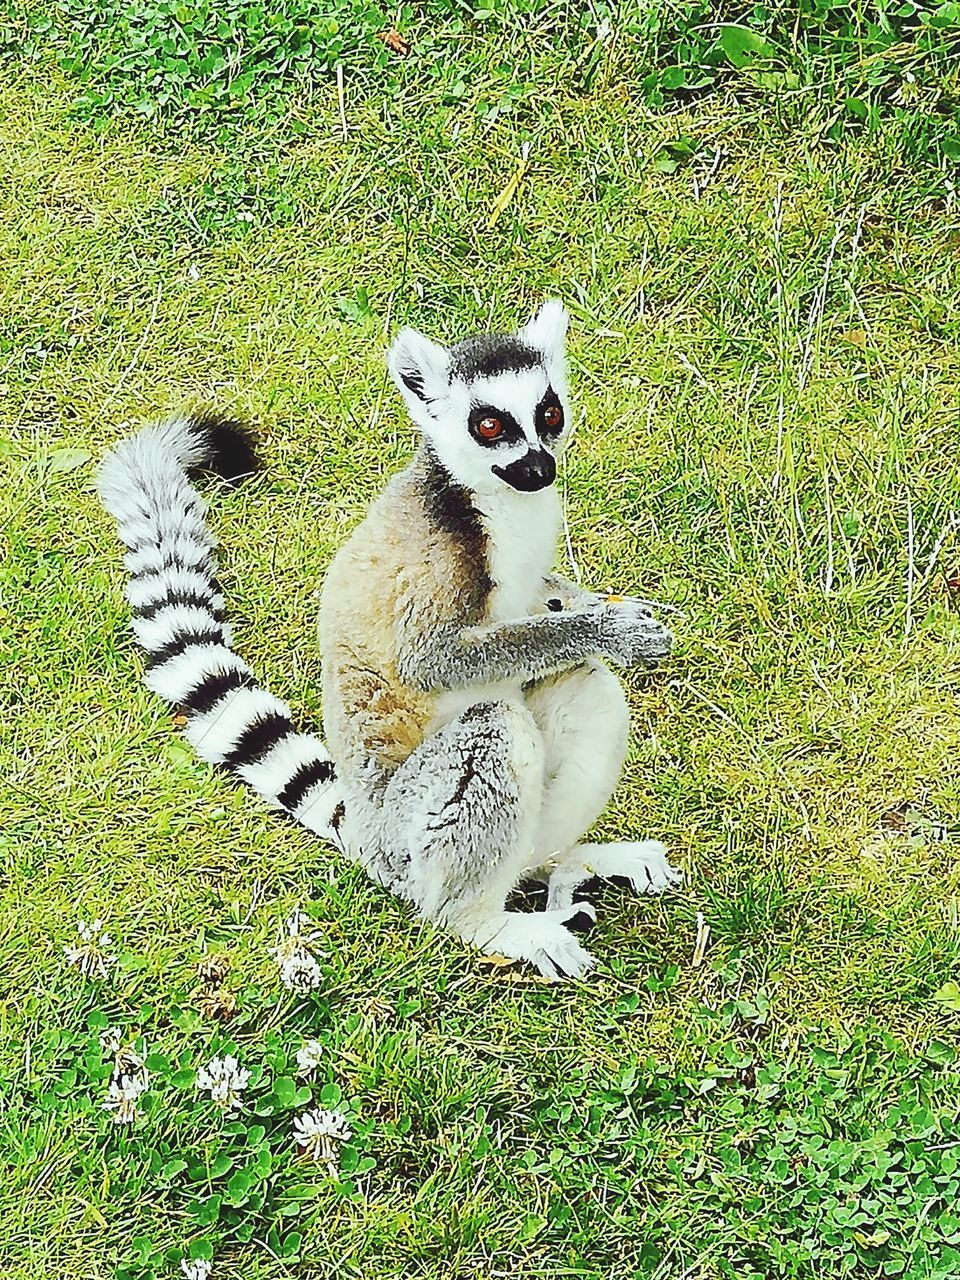 plant, grass, mammal, field, lemur, green color, one animal, land, nature, vertebrate, no people, portrait, animal wildlife, sitting, day, animals in the wild, looking at camera